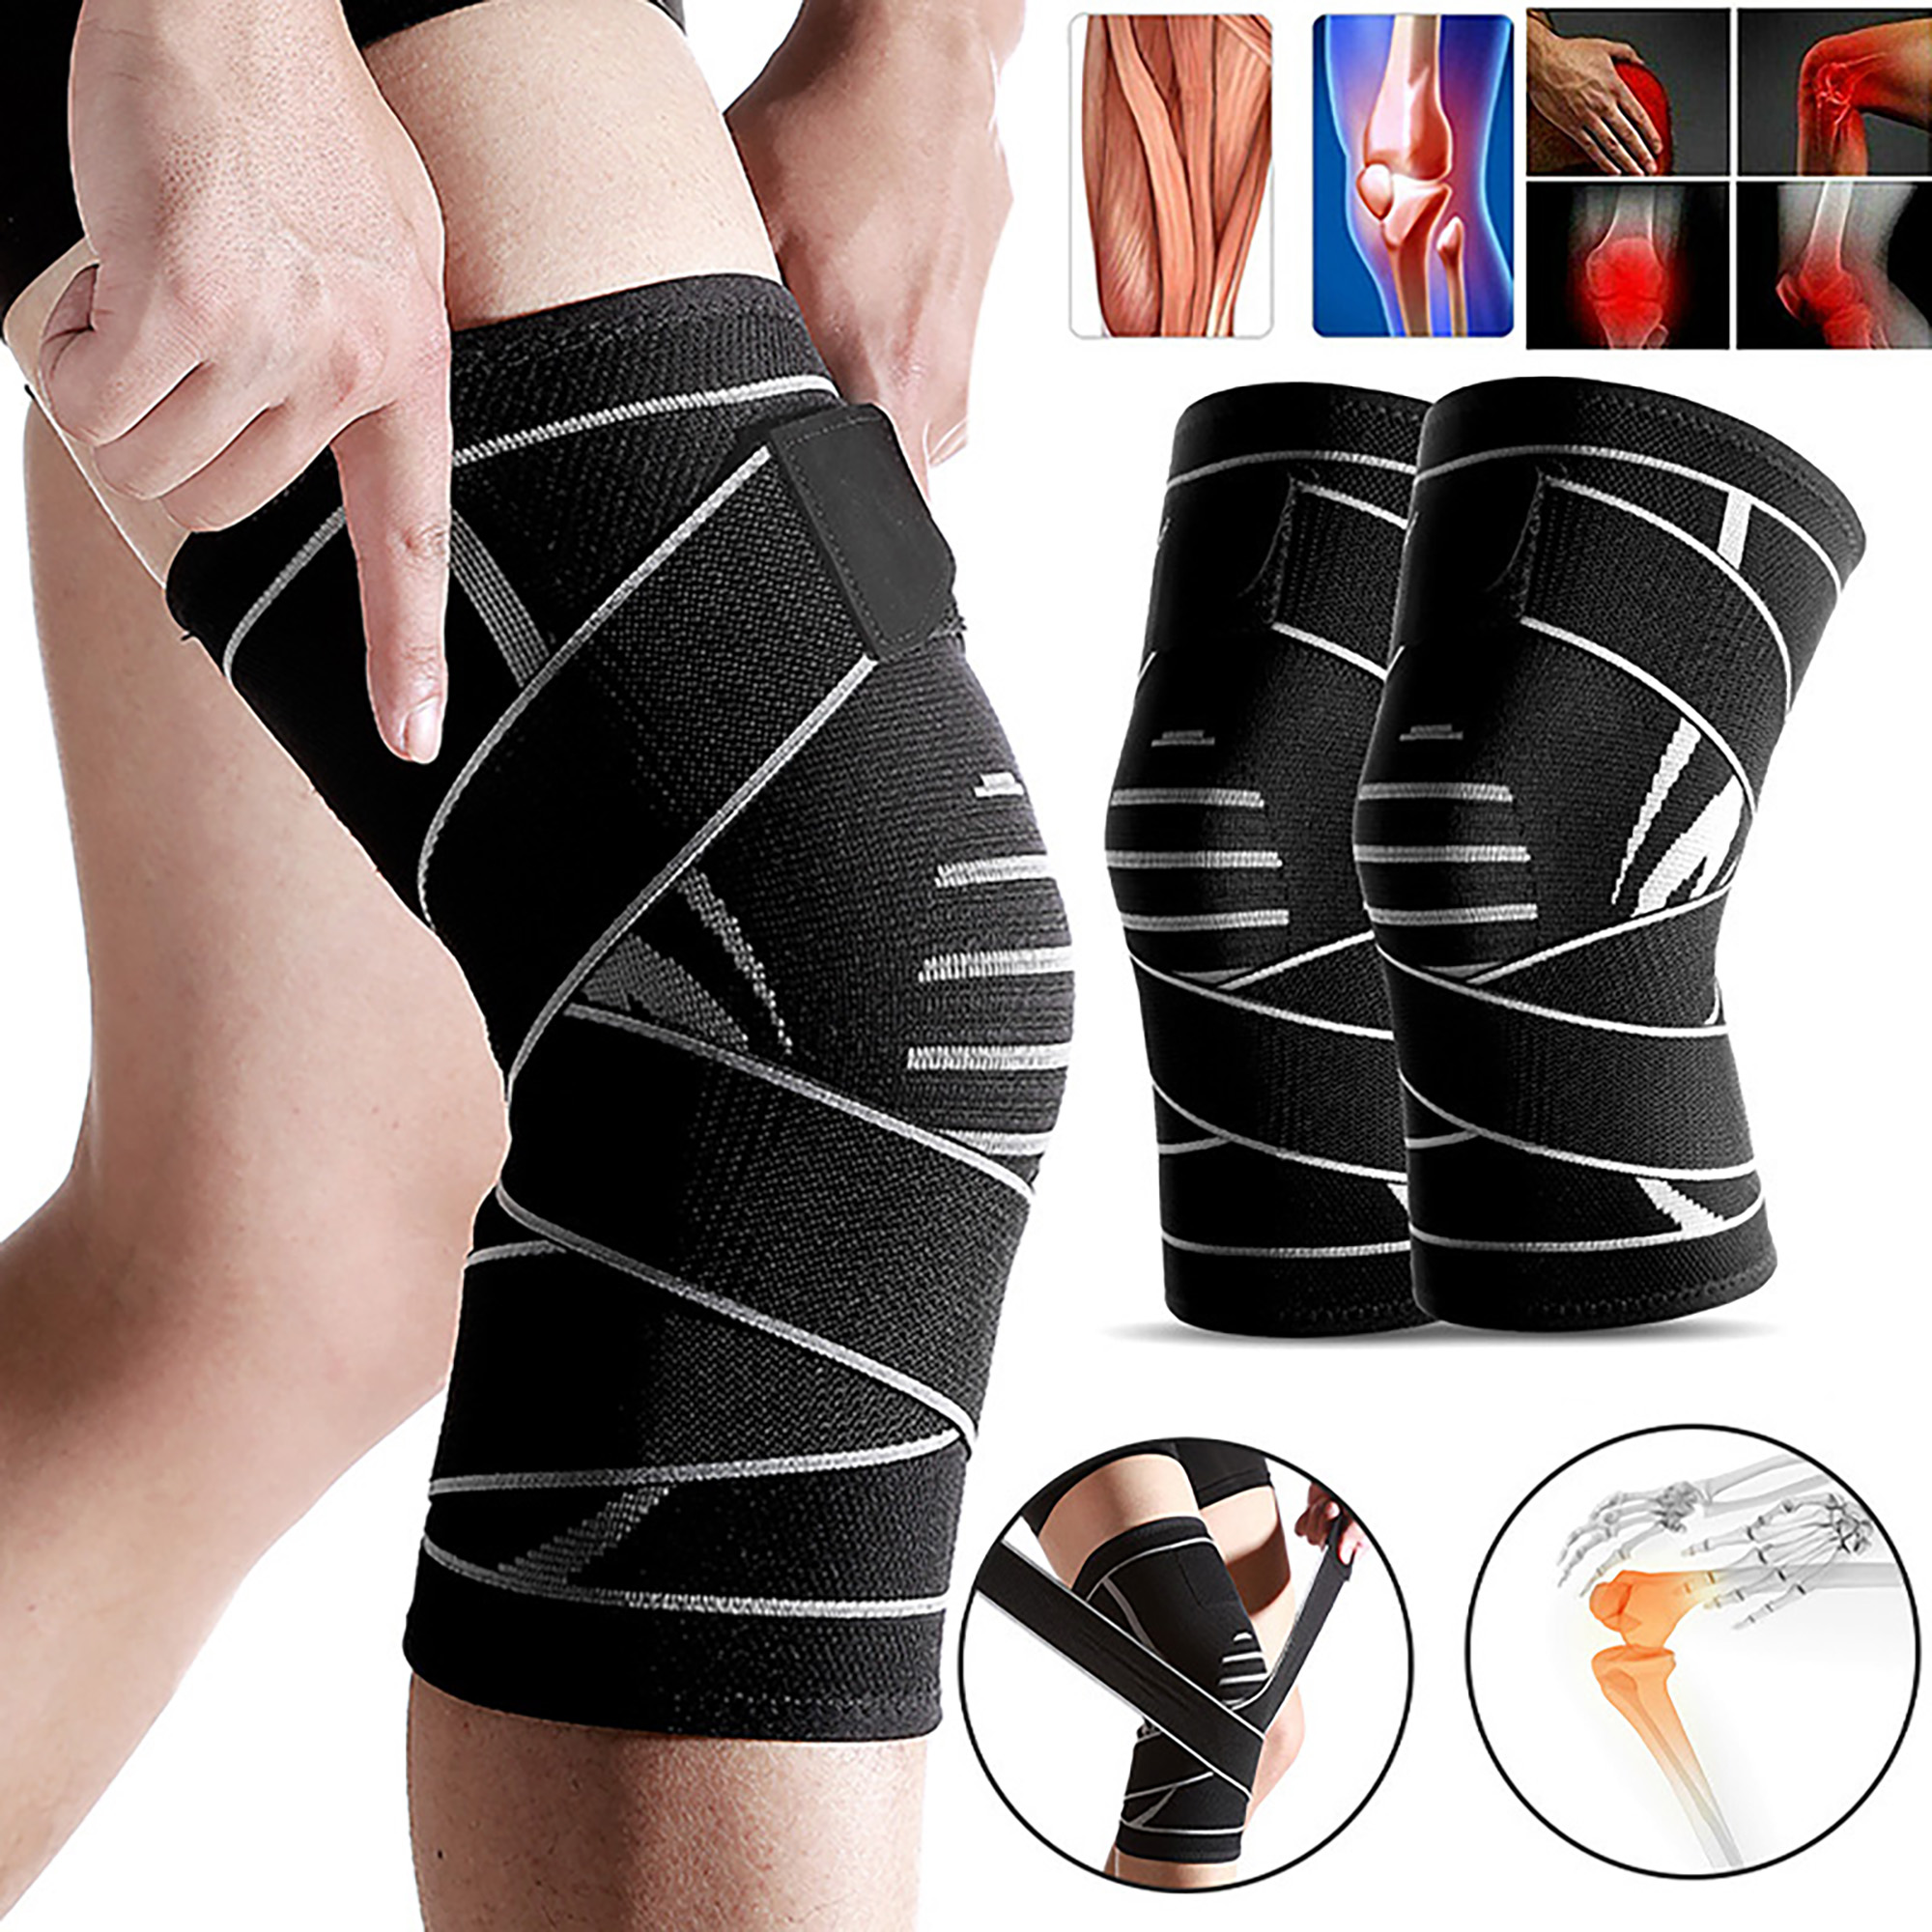 Recovery and Protection M Arthritis Running and Sports Ideal for Joint Pain , Black Sports Knee Compression Sleeve Sports Running Injury Knee Support 35-41cm Arthritis Knee Brace